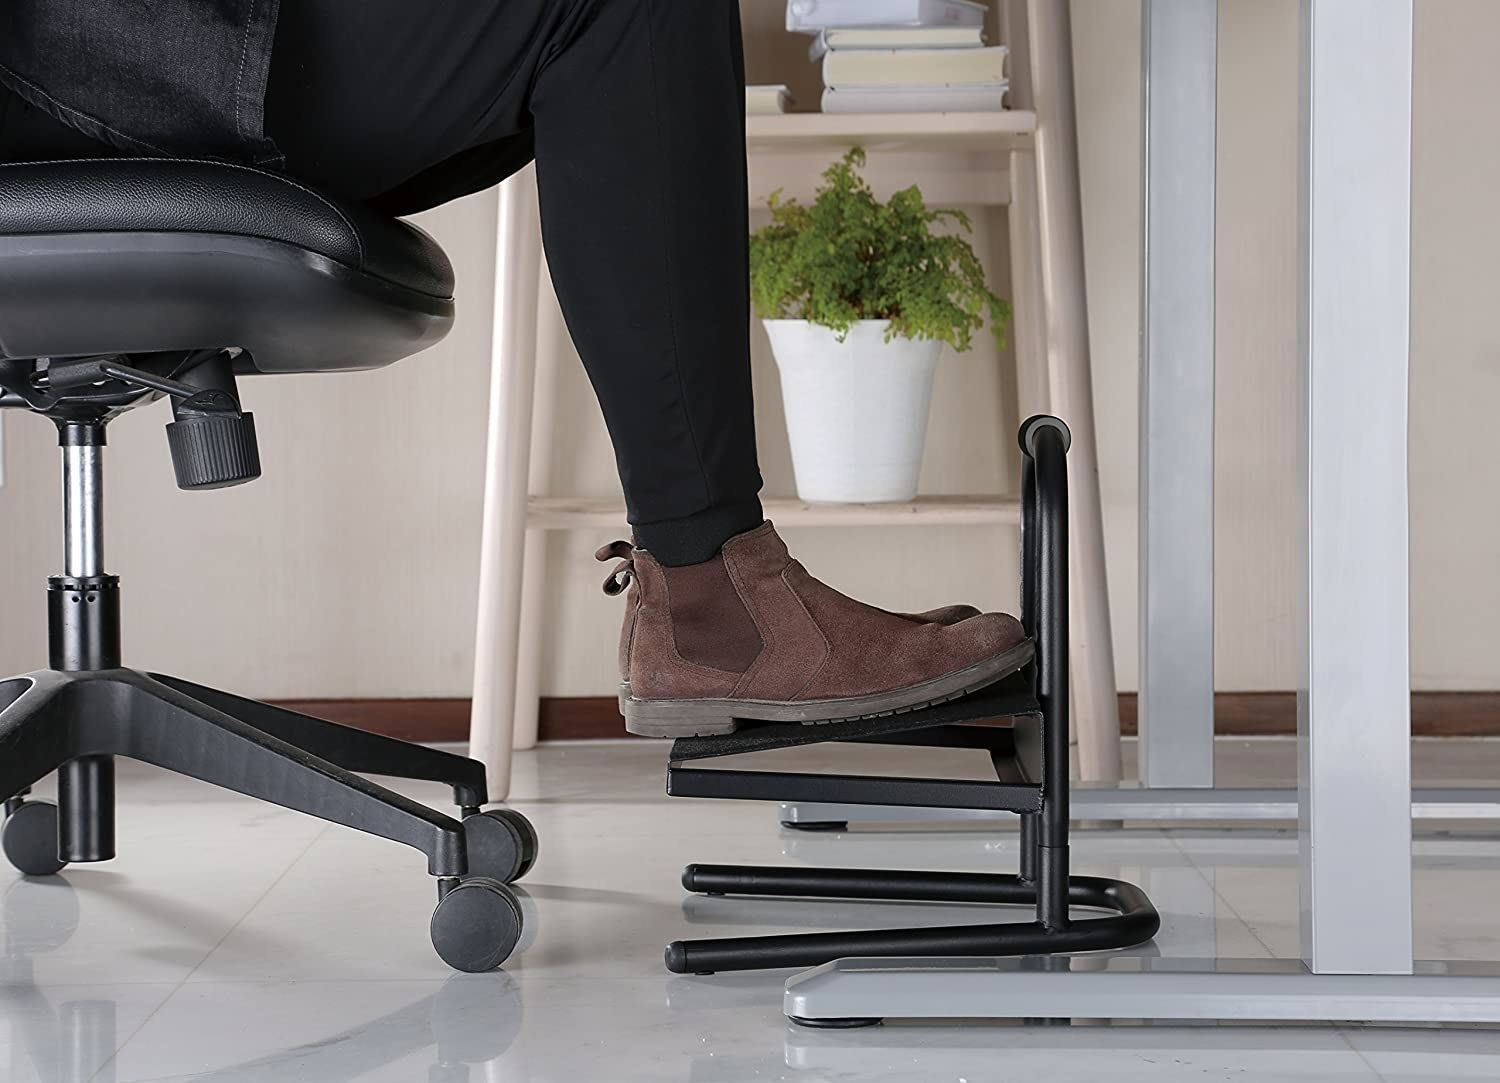 A person's feet on the footrest.